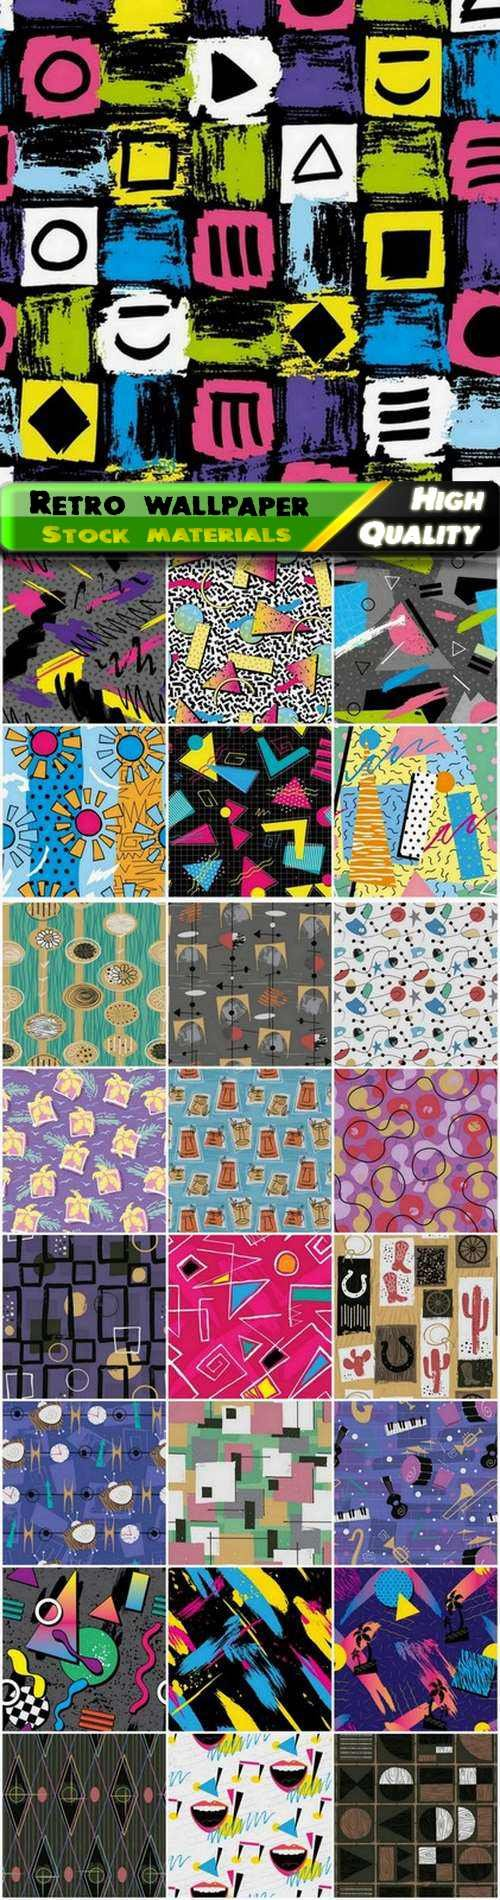 Retro style seamless pattern for wallpaper or textile design - 25 Eps